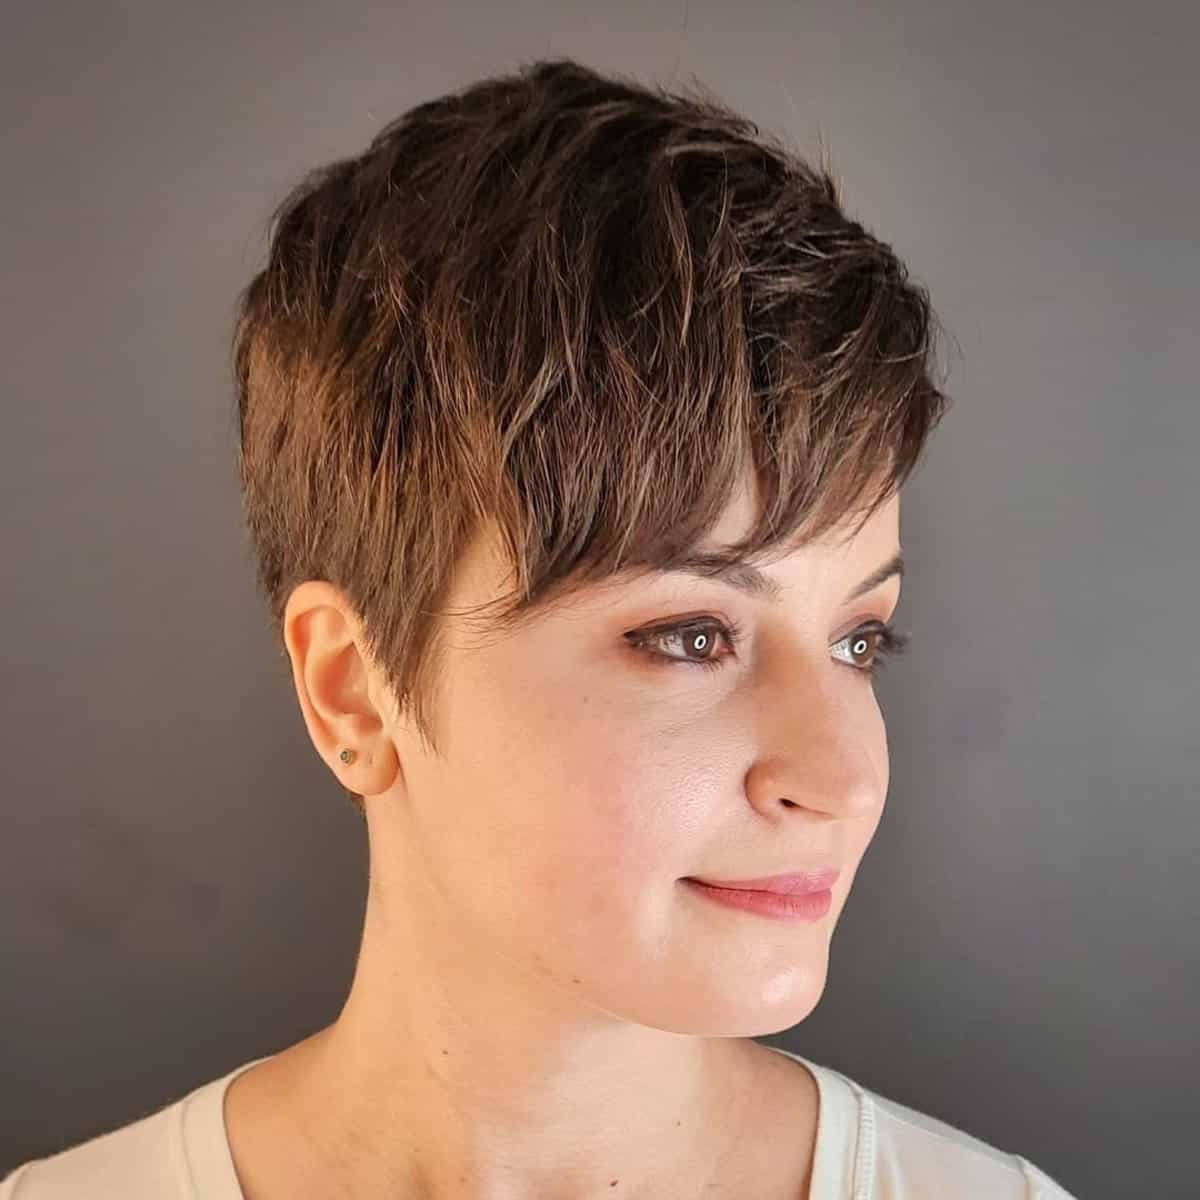 19 Best Very Short Haircuts for Women This Year